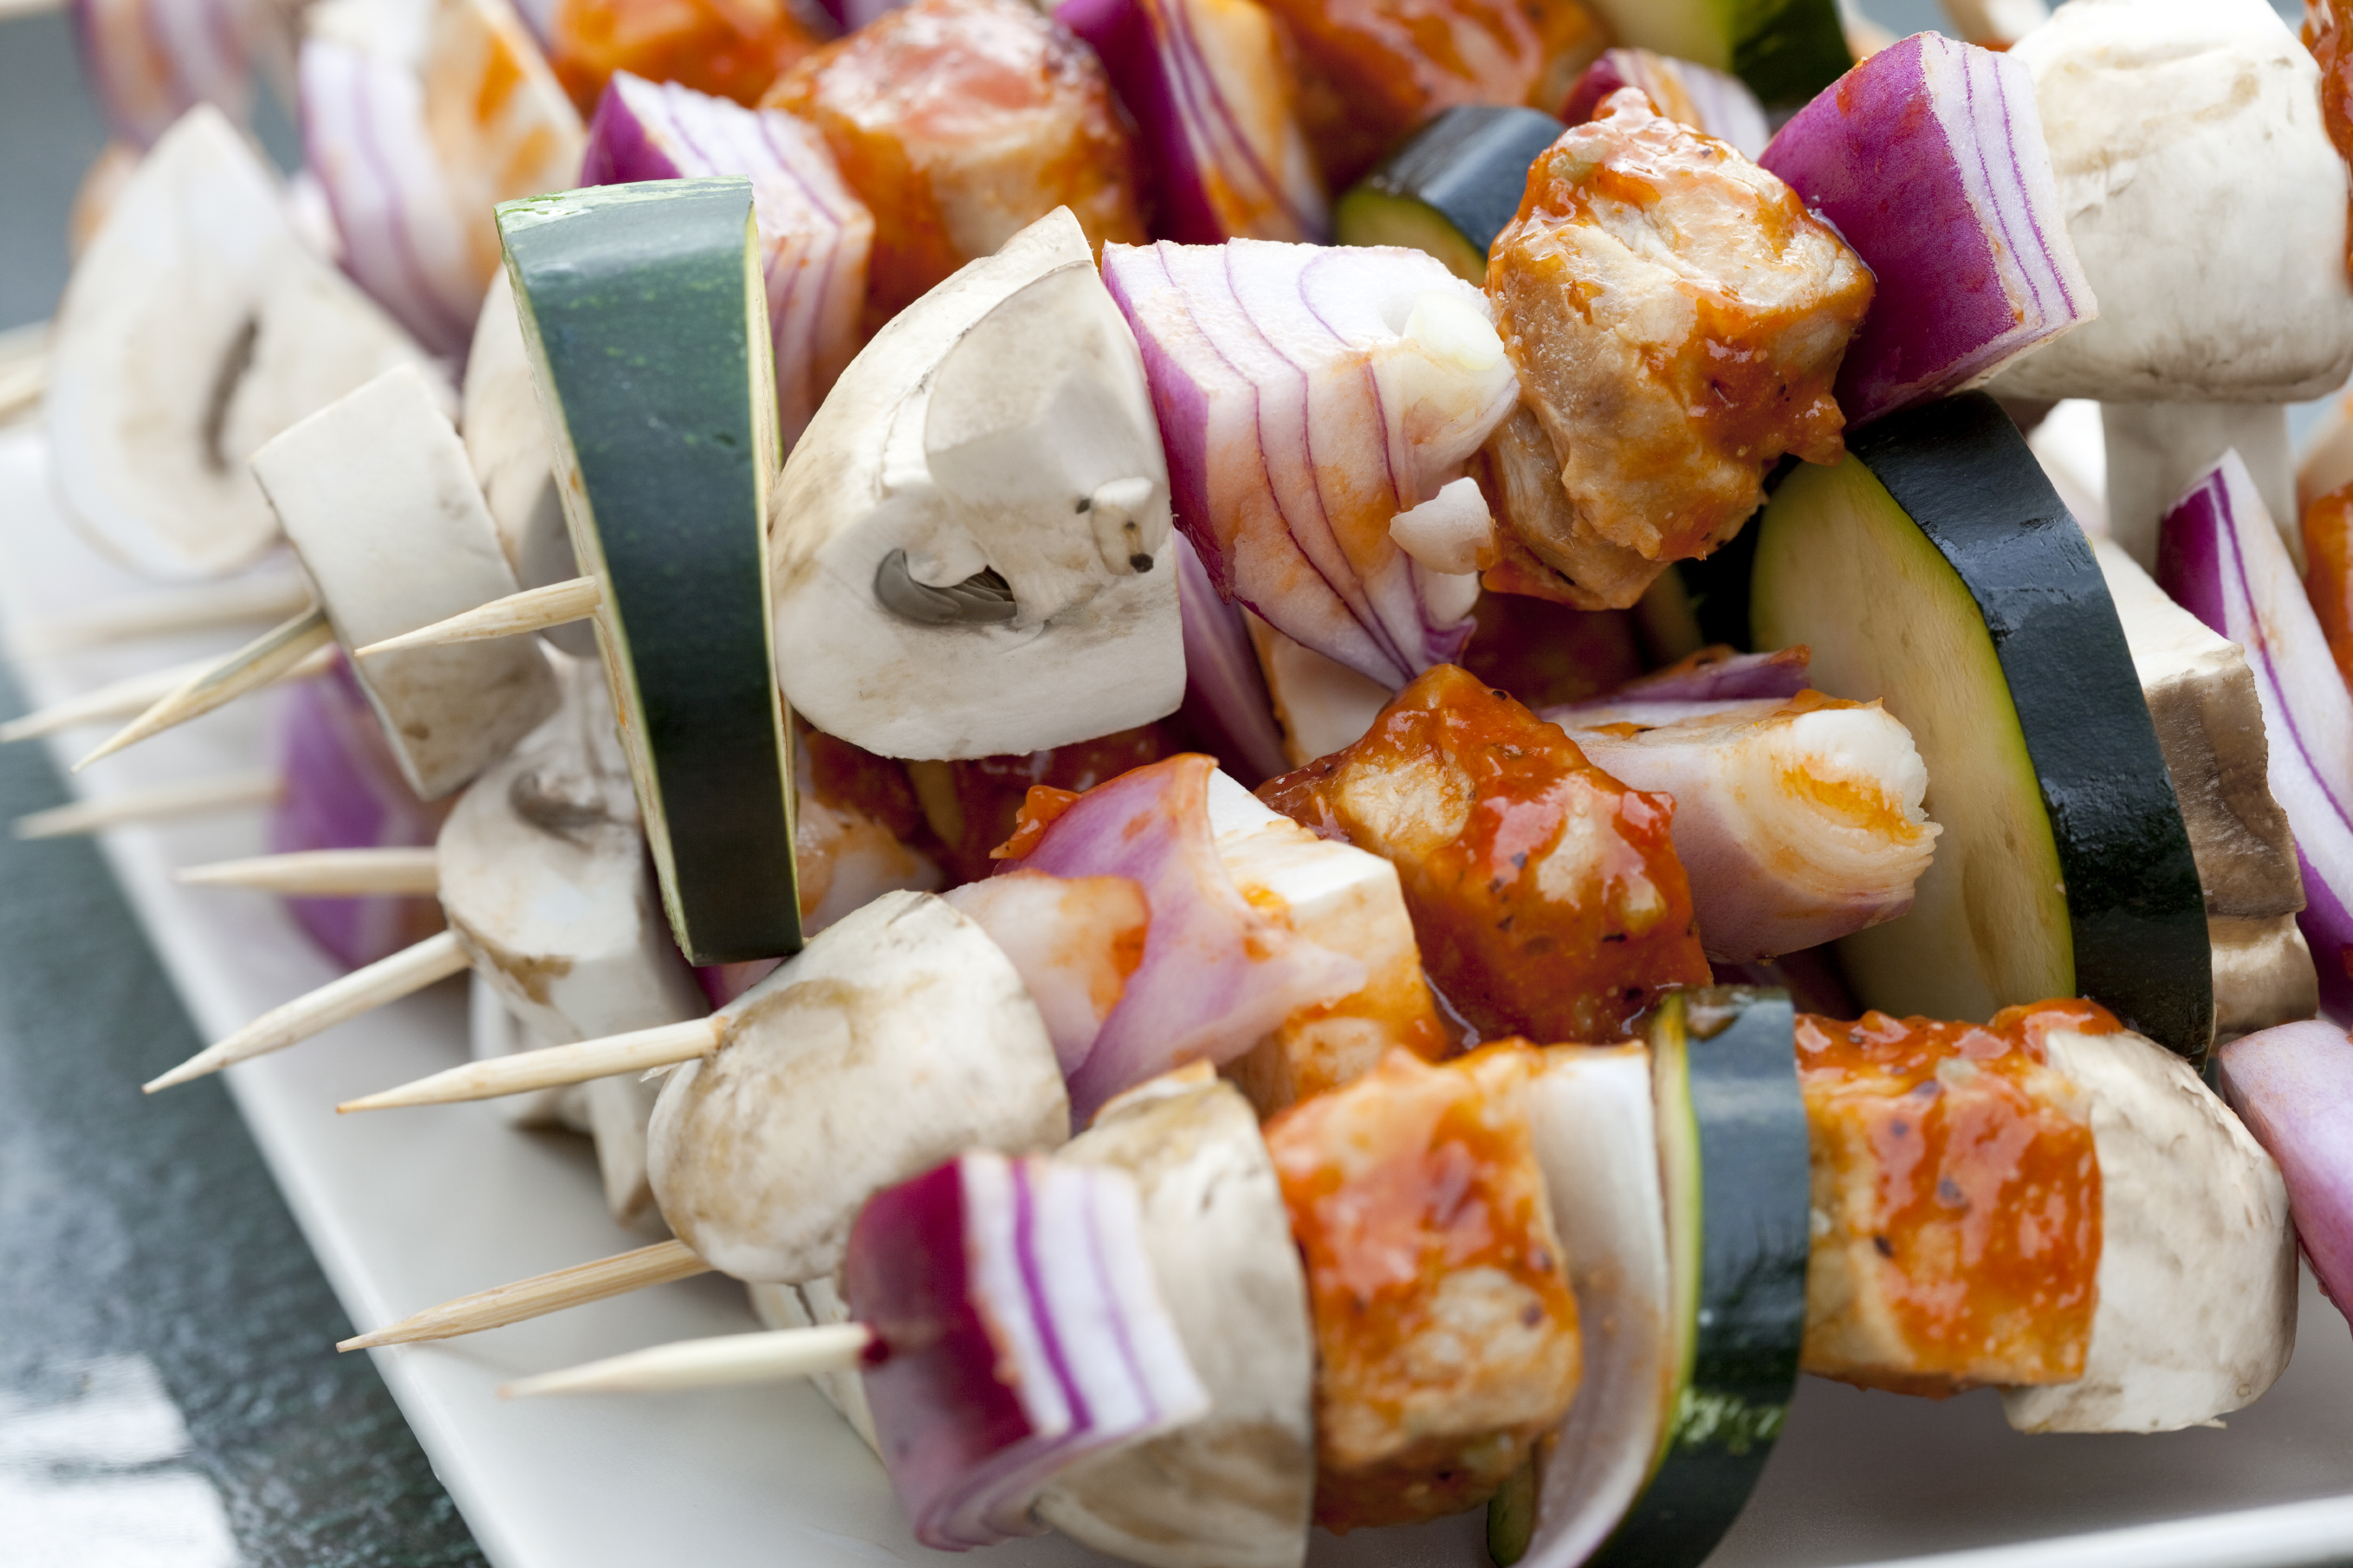 Food_shish_kabobs_16935850Large